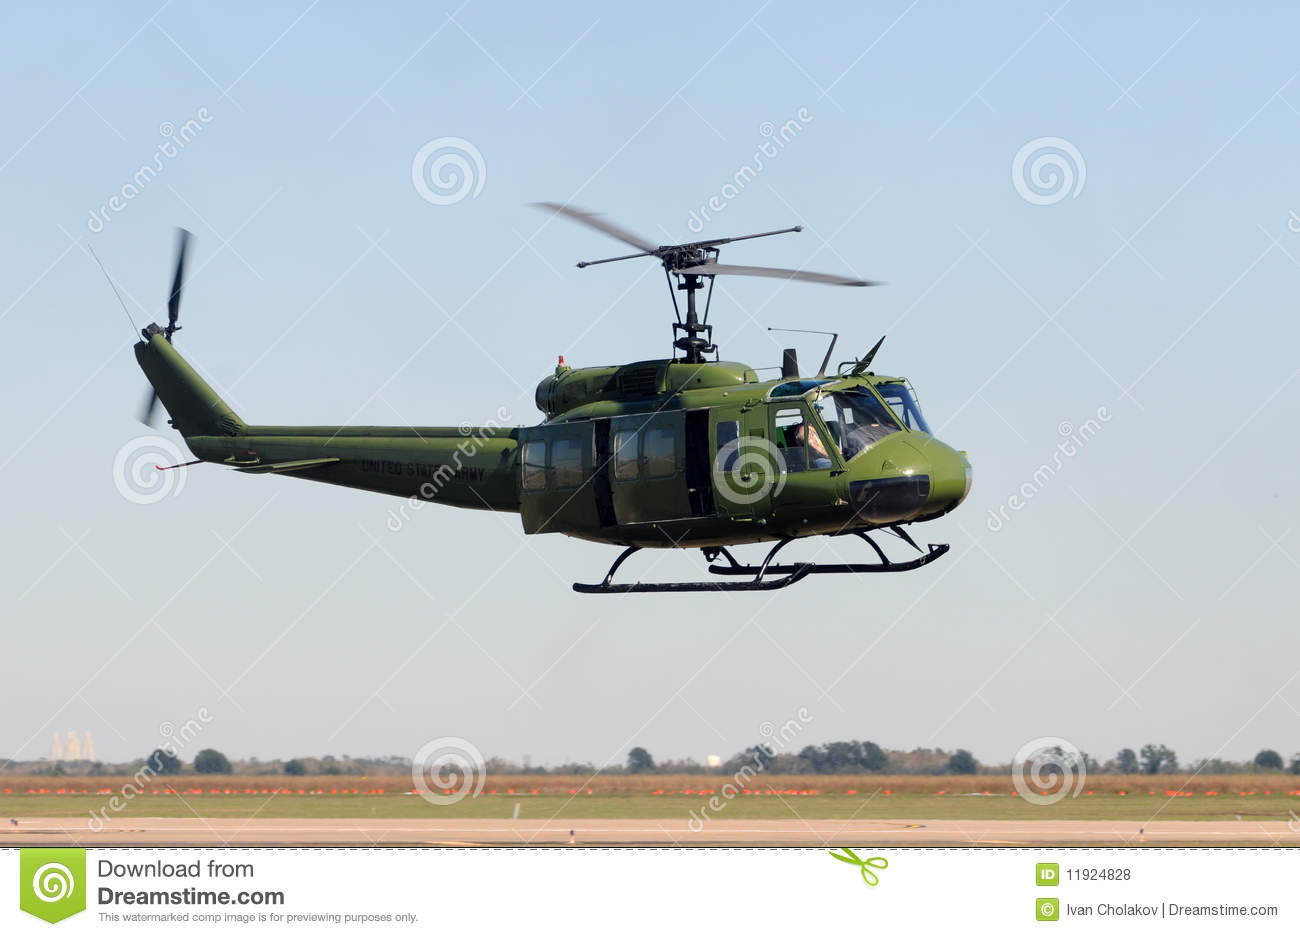 kiowa helicopters with Royalty Free Stock Photos Old Military Helicopter Image11924828 on 1rocket 2 moreover File Damaged US Army AH 64 Apache  Iraq as well 711 besides Army Helicopters Stealth  anche Rah 66 Wallpaper 10575 further 10 air vehicles.